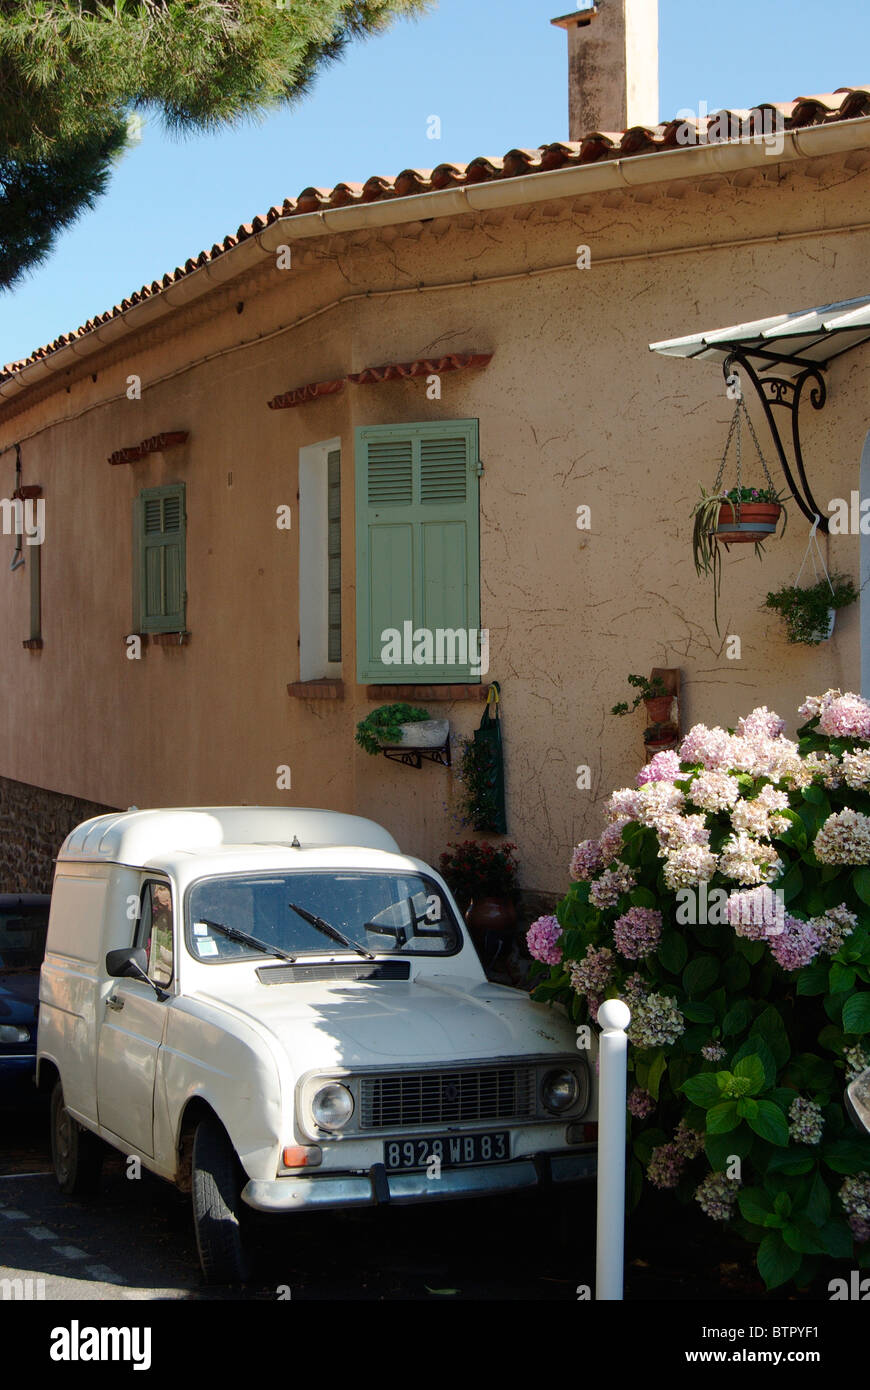 France, Bormes-les-Mimosas, Car parked near home on back street - Stock Image